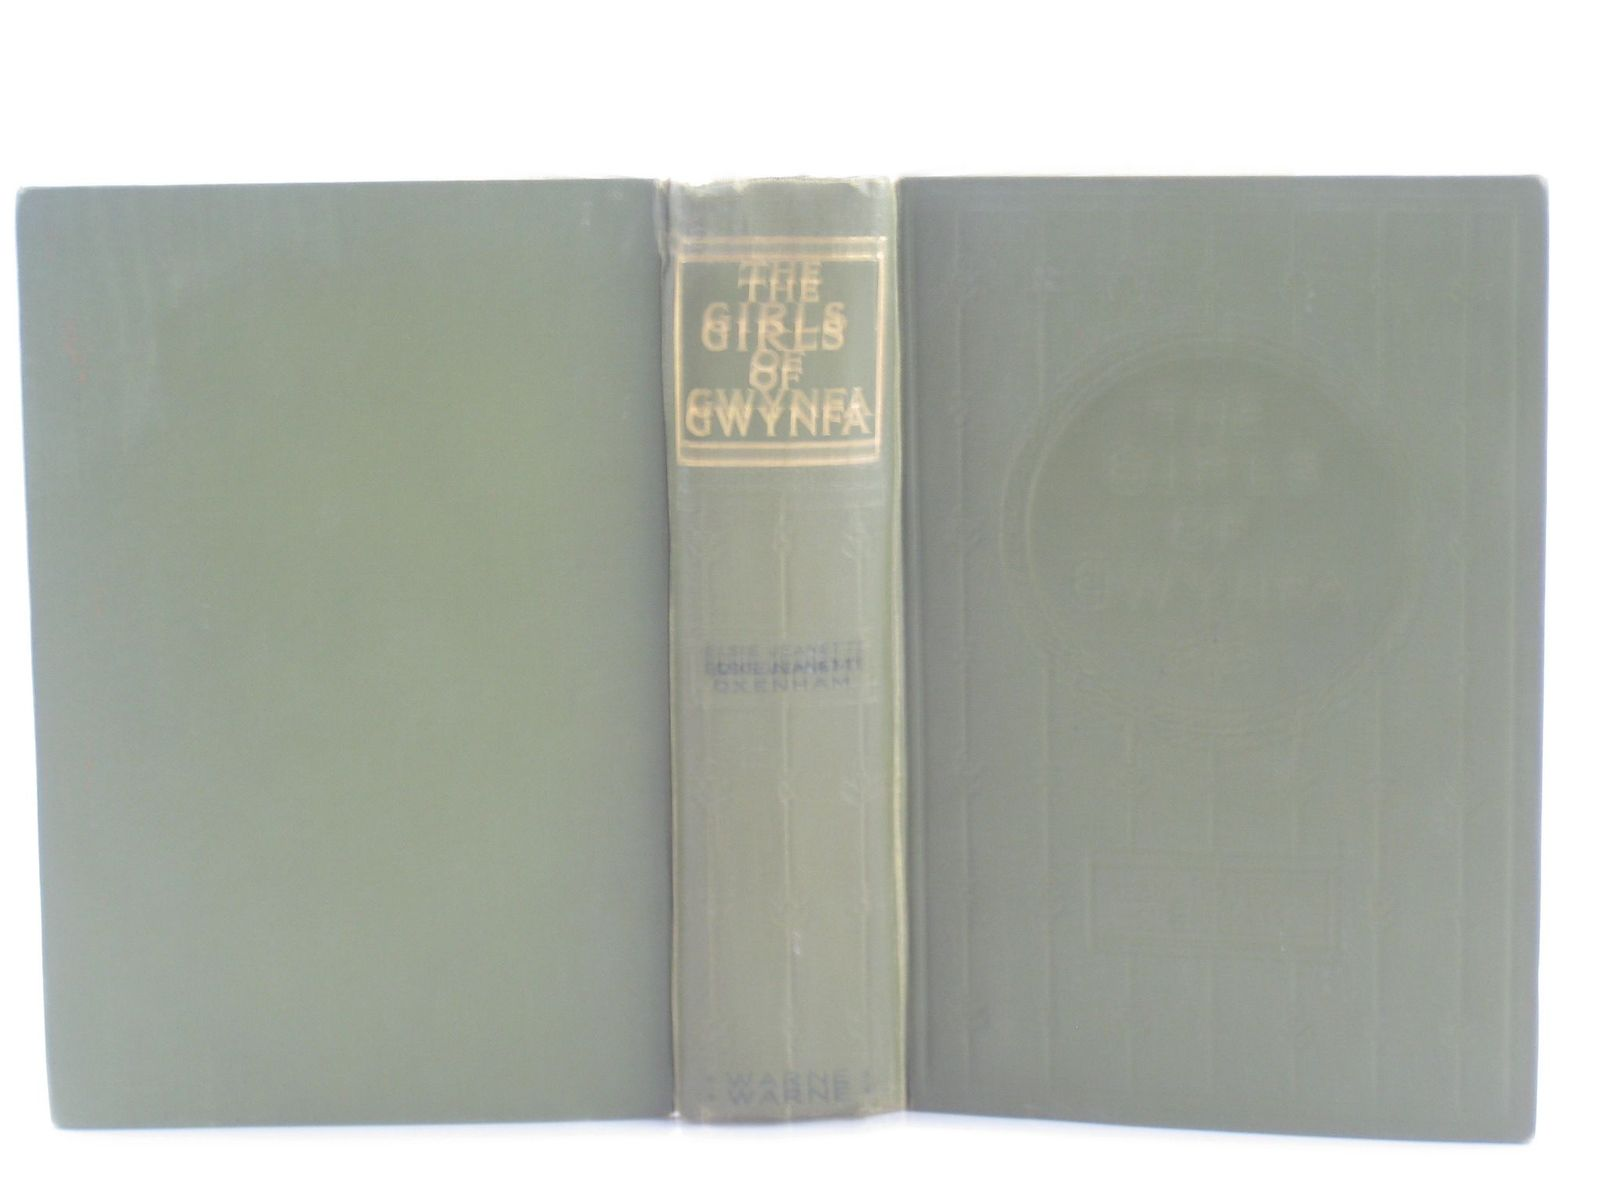 Photo of THE GIRLS OF GWYNFA written by Oxenham, Elsie J. published by Frederick Warne & Co Ltd. (STOCK CODE: 1501811)  for sale by Stella & Rose's Books